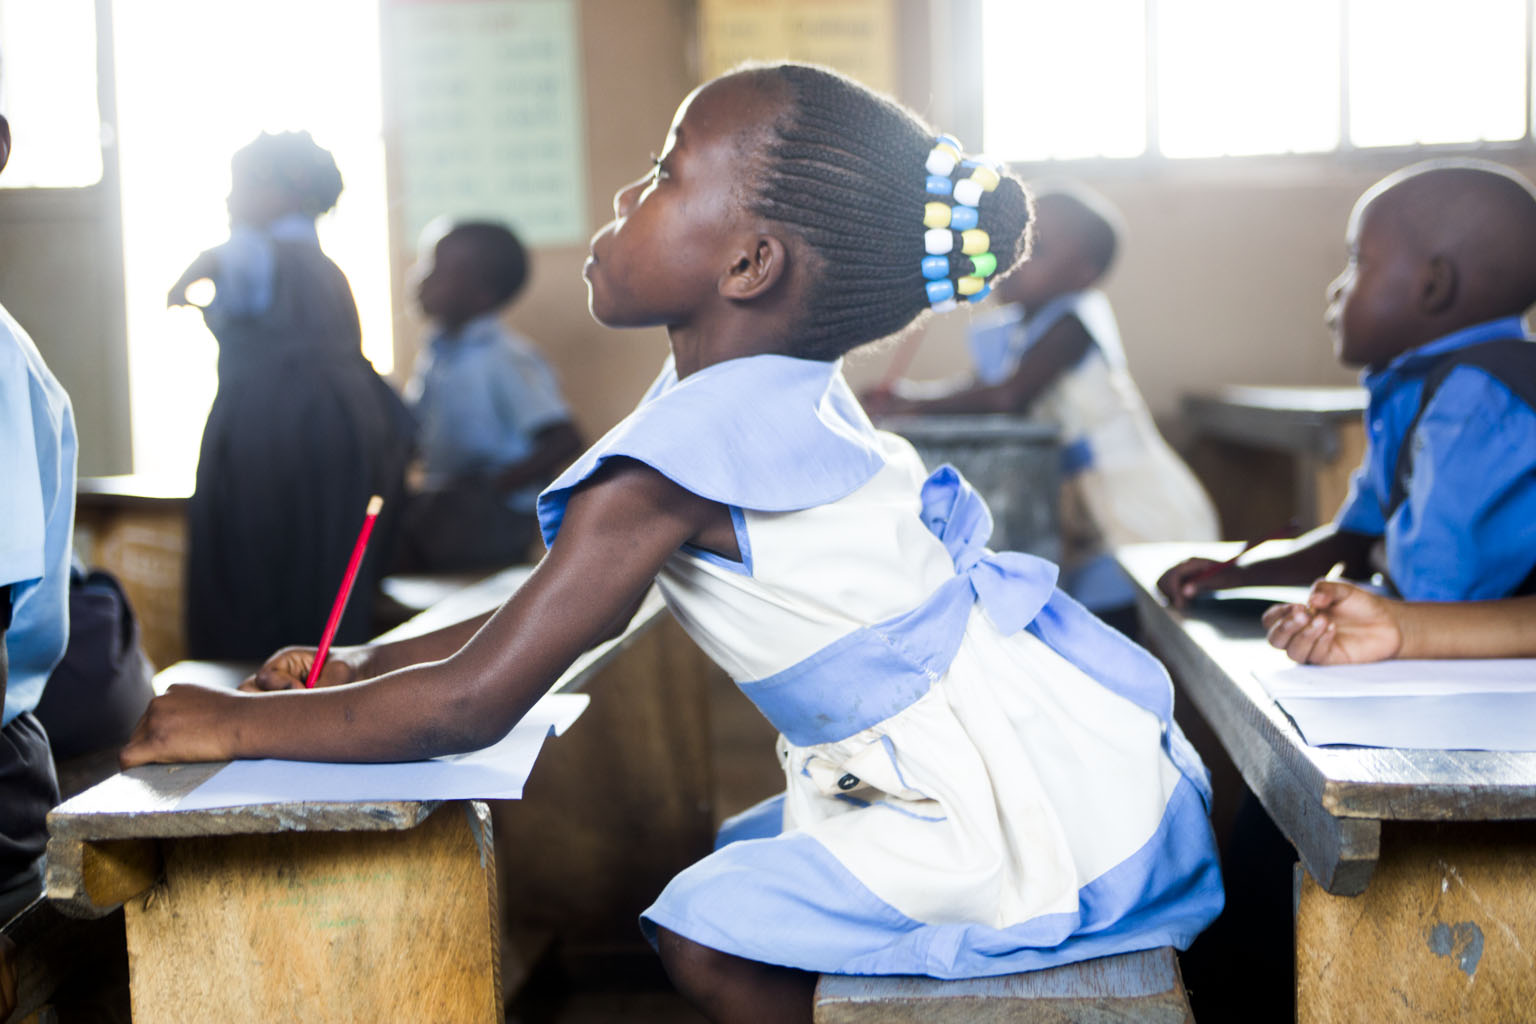 By sending a girl to school, we not only educate the next generation, but we change the world.